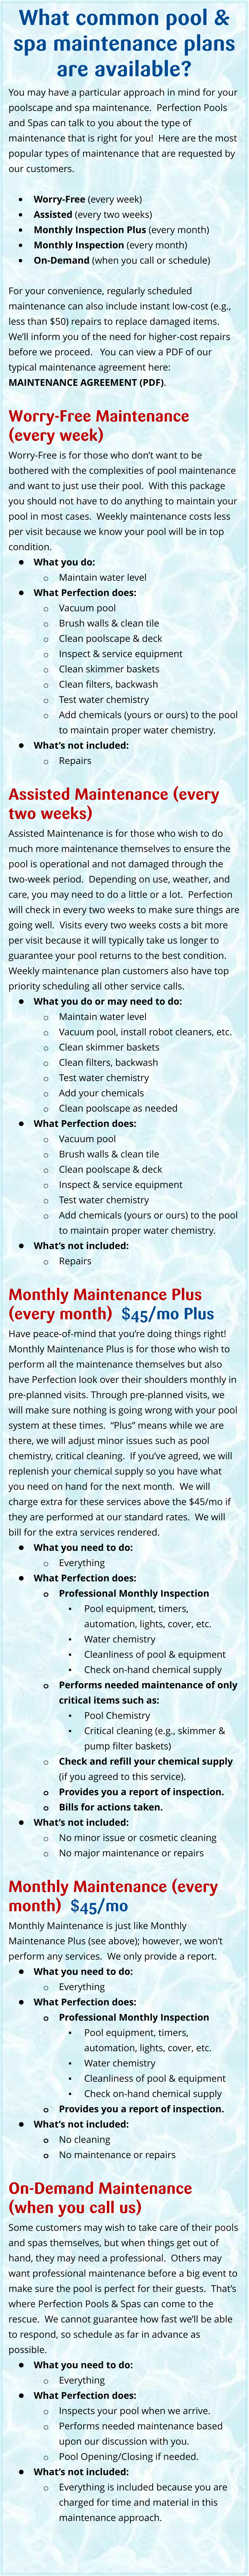 Pool And Spa Maintenance Albuquerque And Rio Rancho Areas